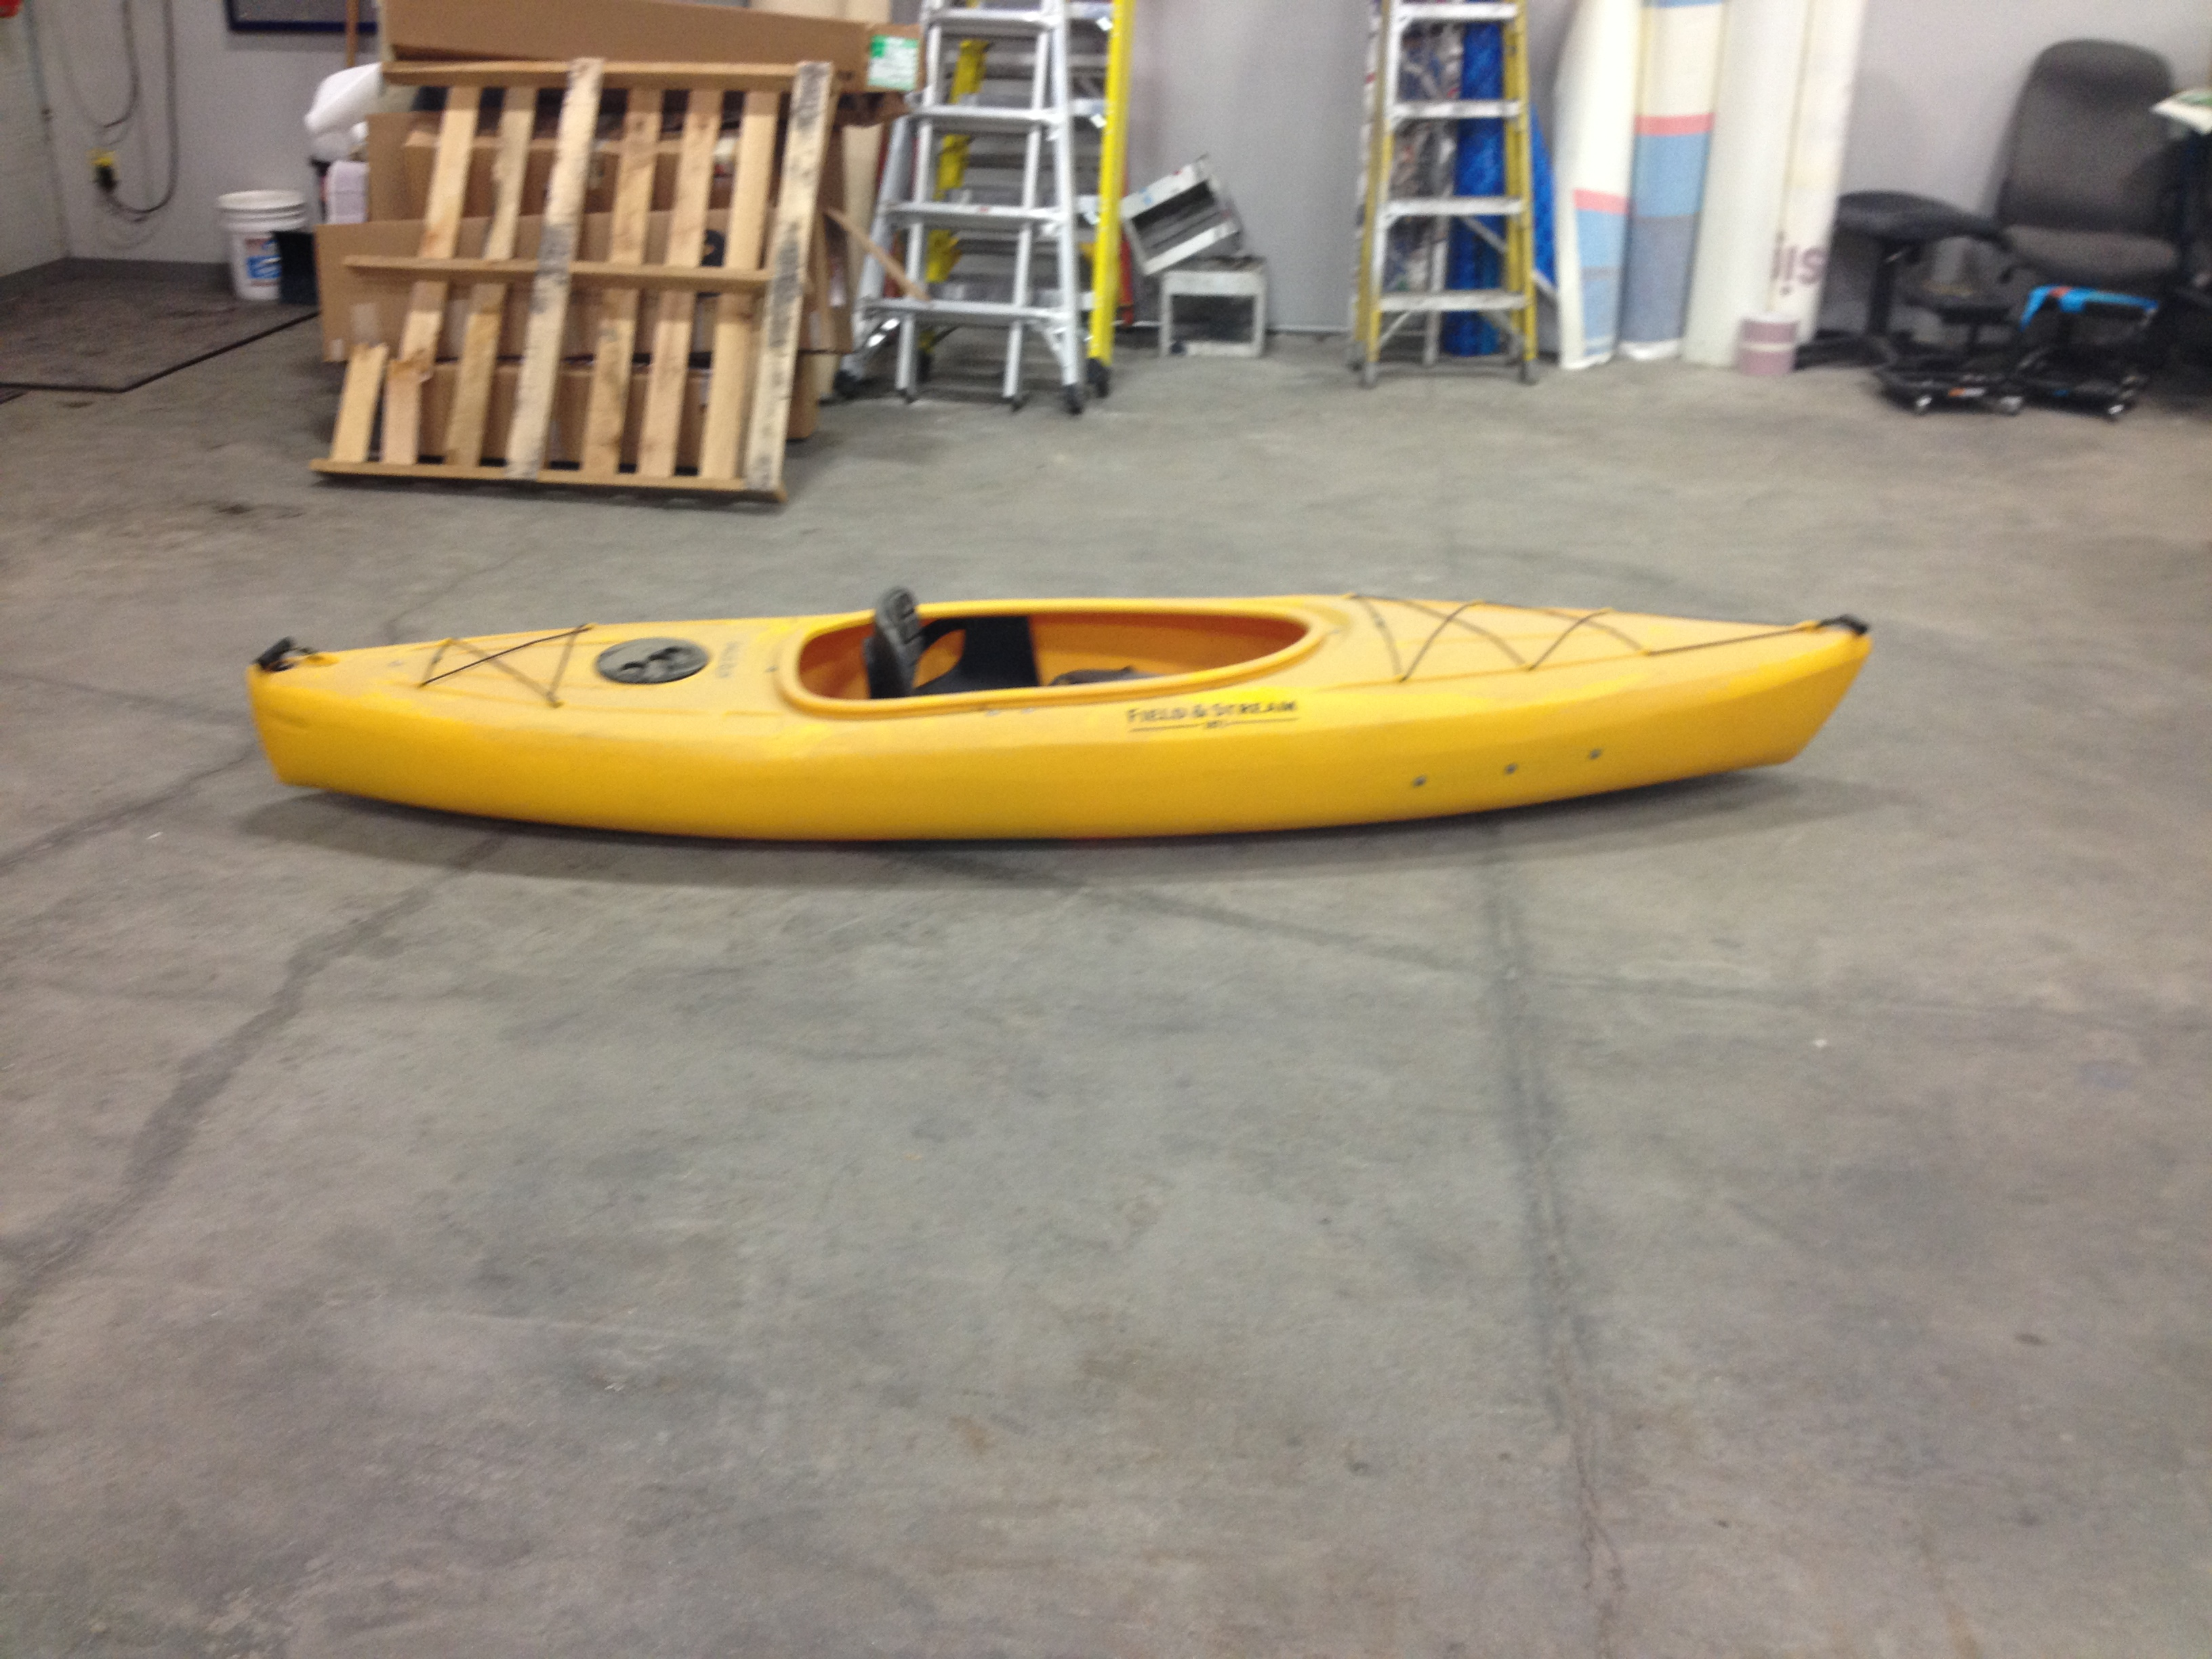 Fh decals introduces kayak wraps to the masses